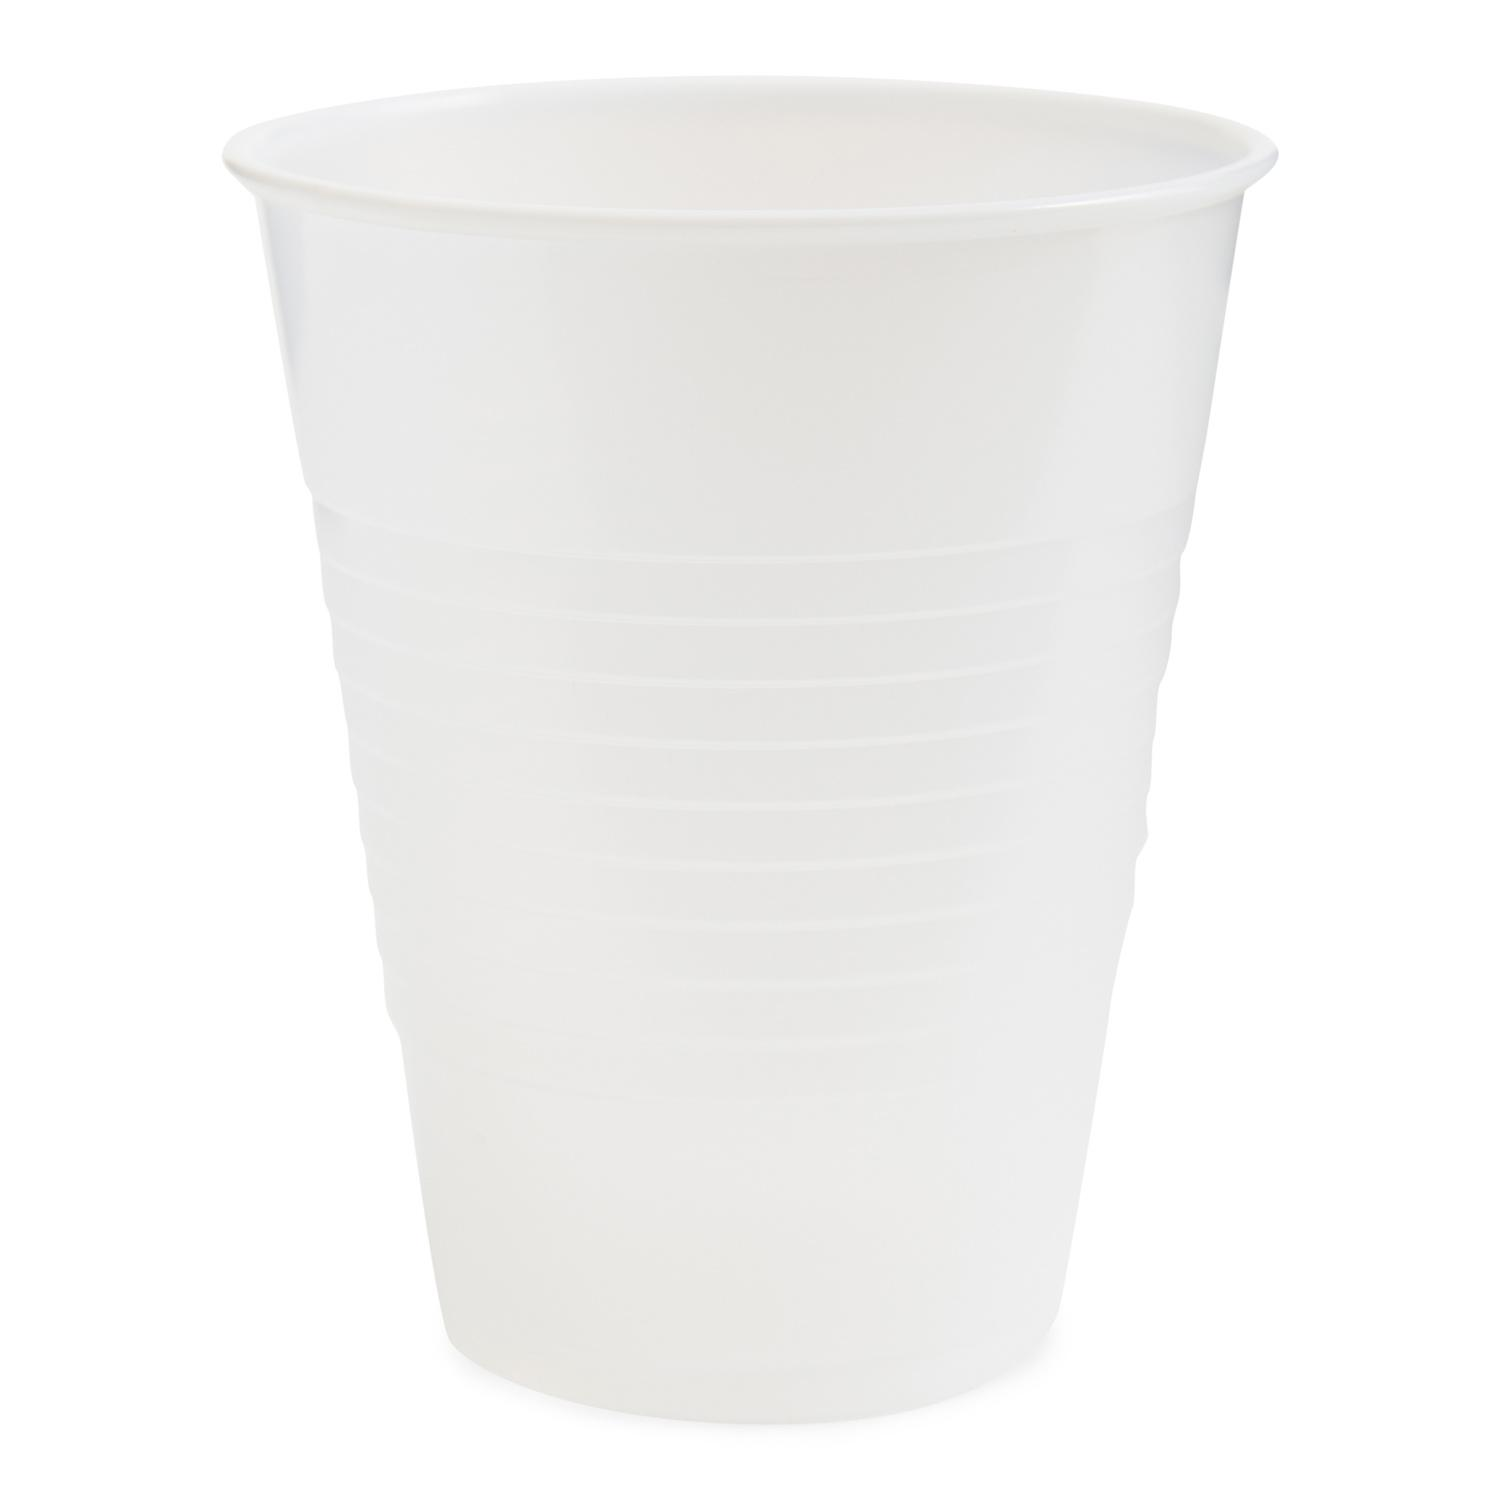 image of Cup Plastic Translucent High Impact Polystyrene 12 Ounce